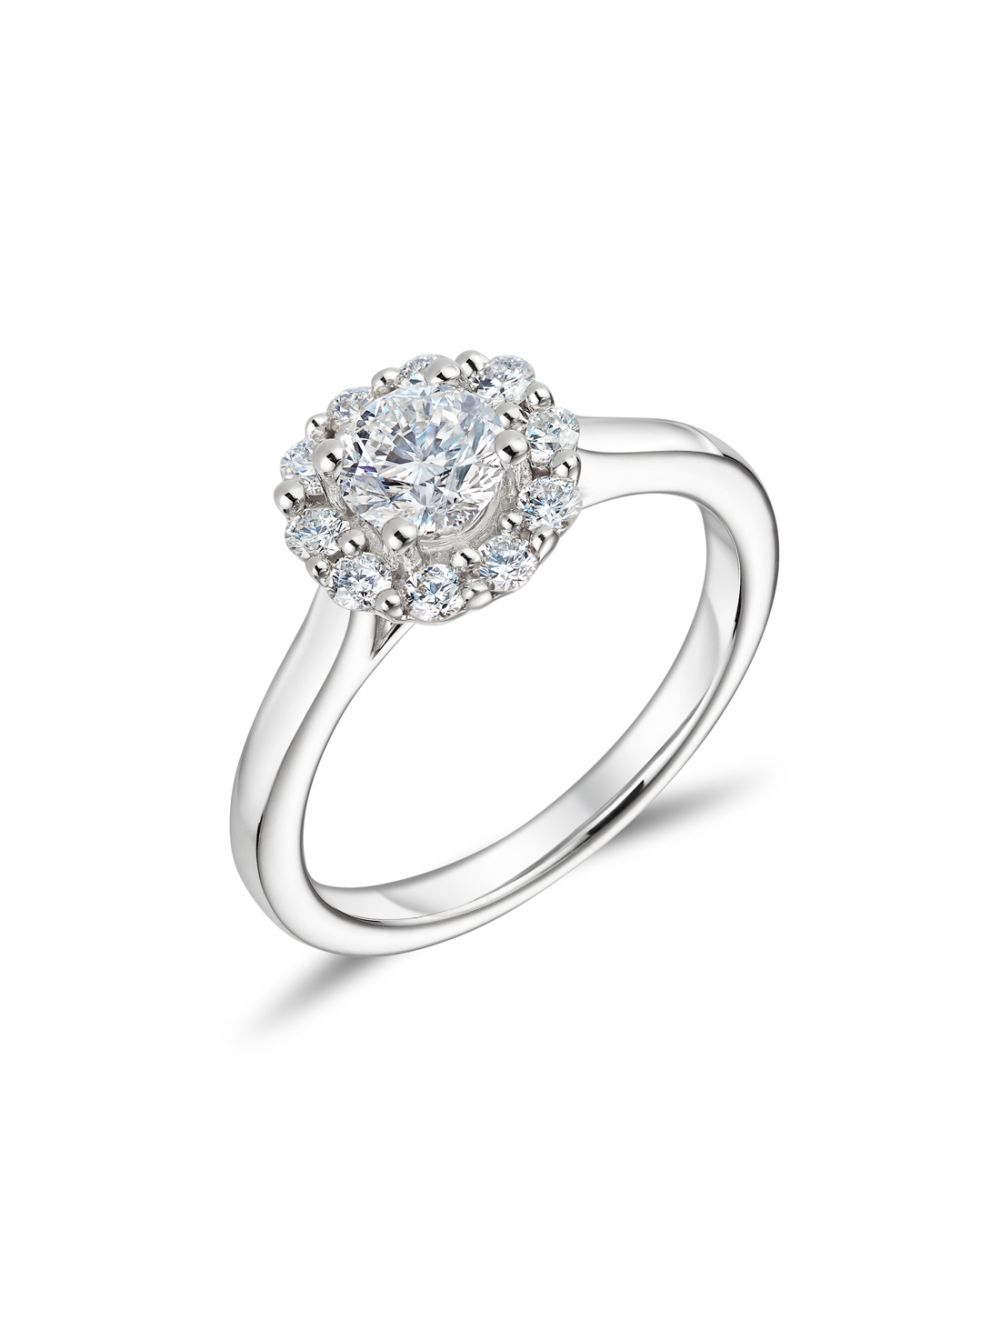 18ct Round Brilliant Cut Diamond Engagement Ring With Round Brilliant Diamond Engagement Rings (View 7 of 25)